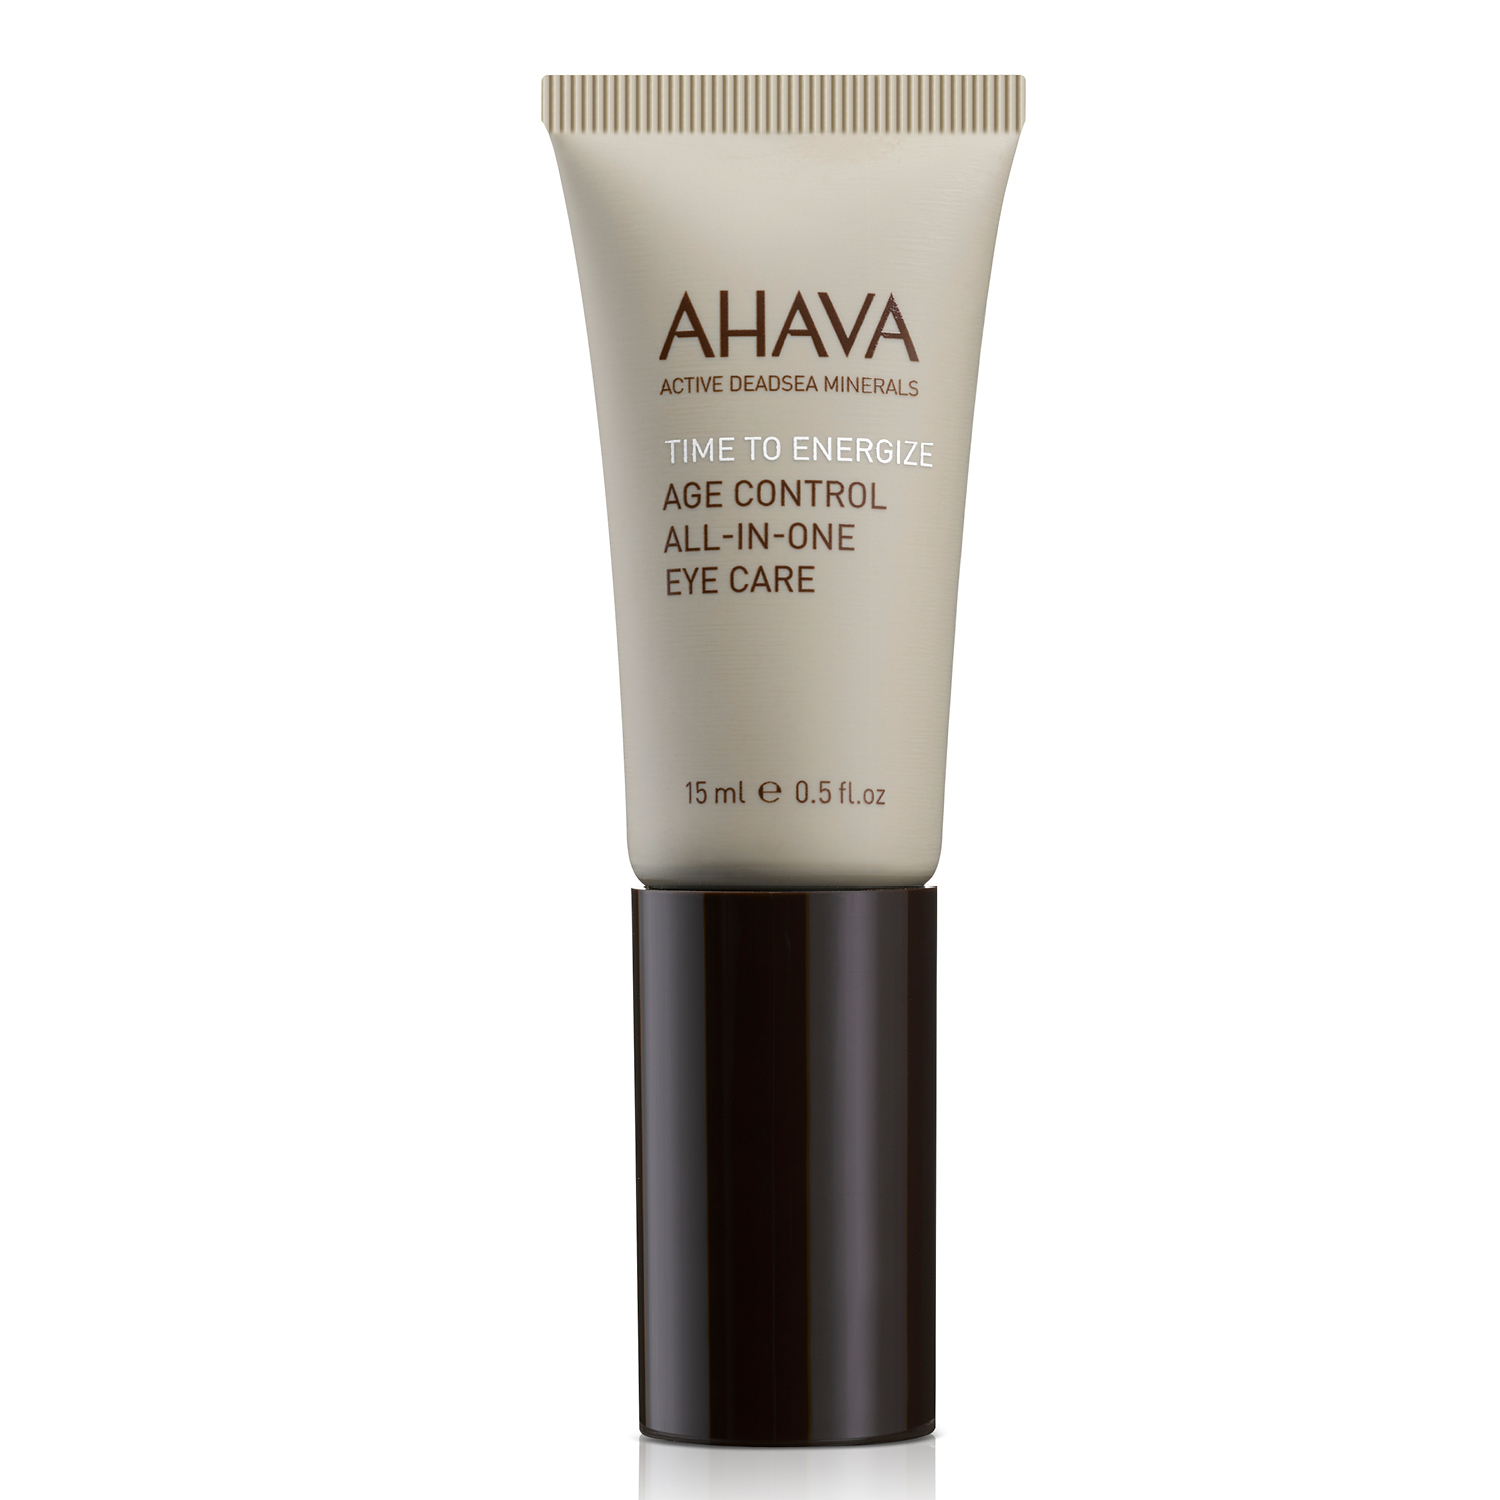 Age Control All in 1 Eye Care 15 ml